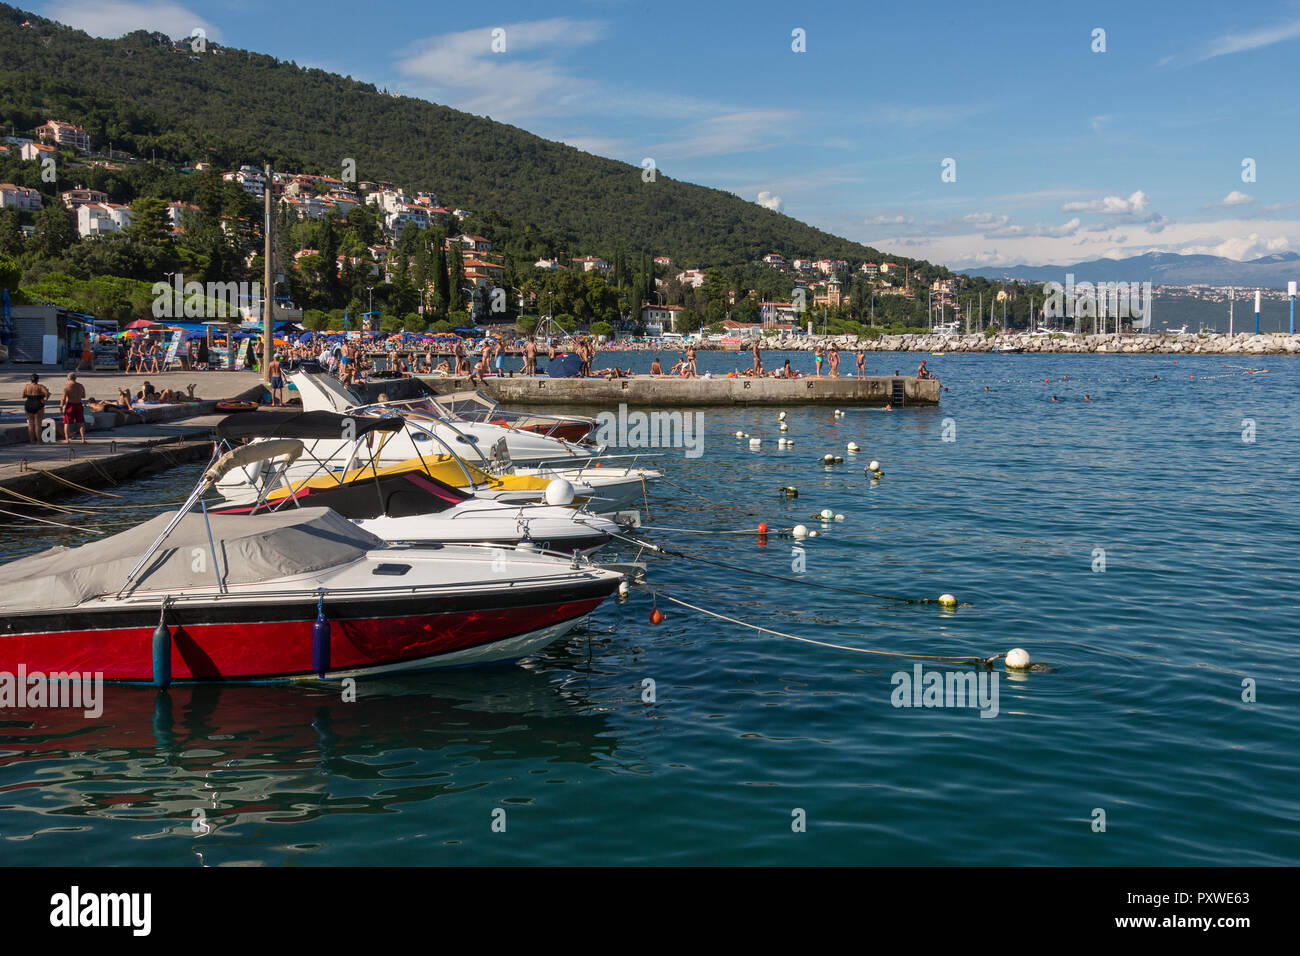 The resort of Icici on the Istria Peninsula on northwest Croatia. It is popular tourist resort on the Opatija Riviera. (Also known as Jicici). Stock Photo